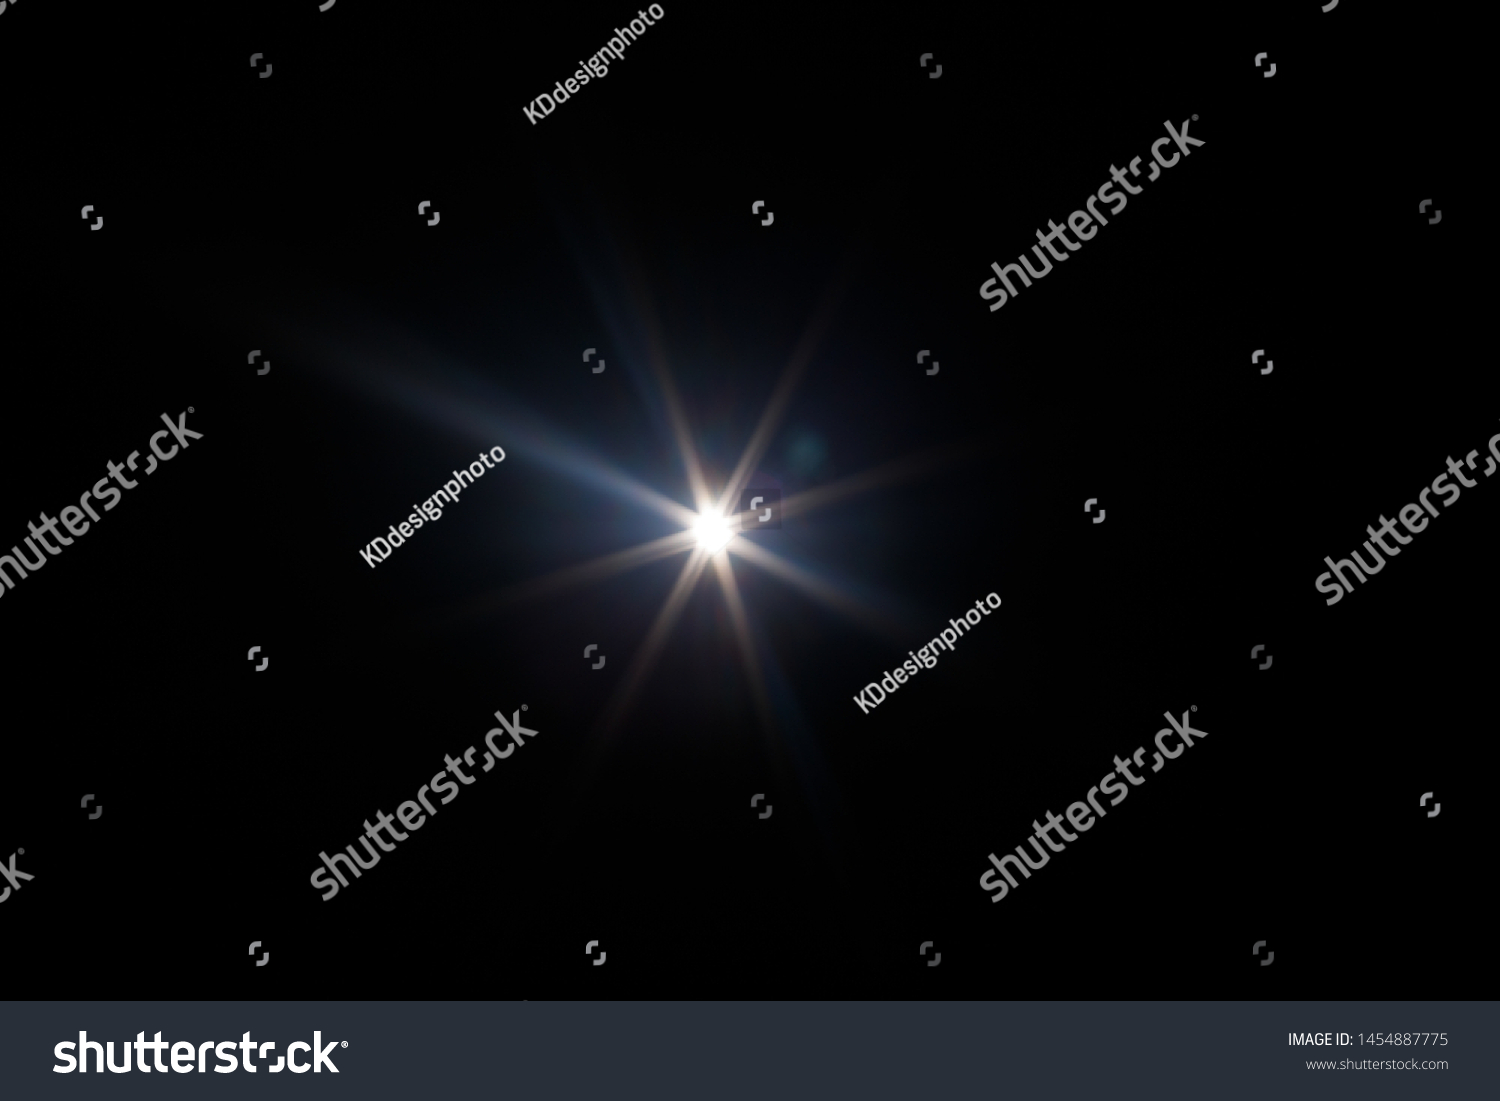 Lens Flare. Light over black background. Easy to add overlay or screen filter over photos. Abstract sun burst with digital lens flare background. Gleams rounded and hexagonal shapes, rainbow halo. #1454887775